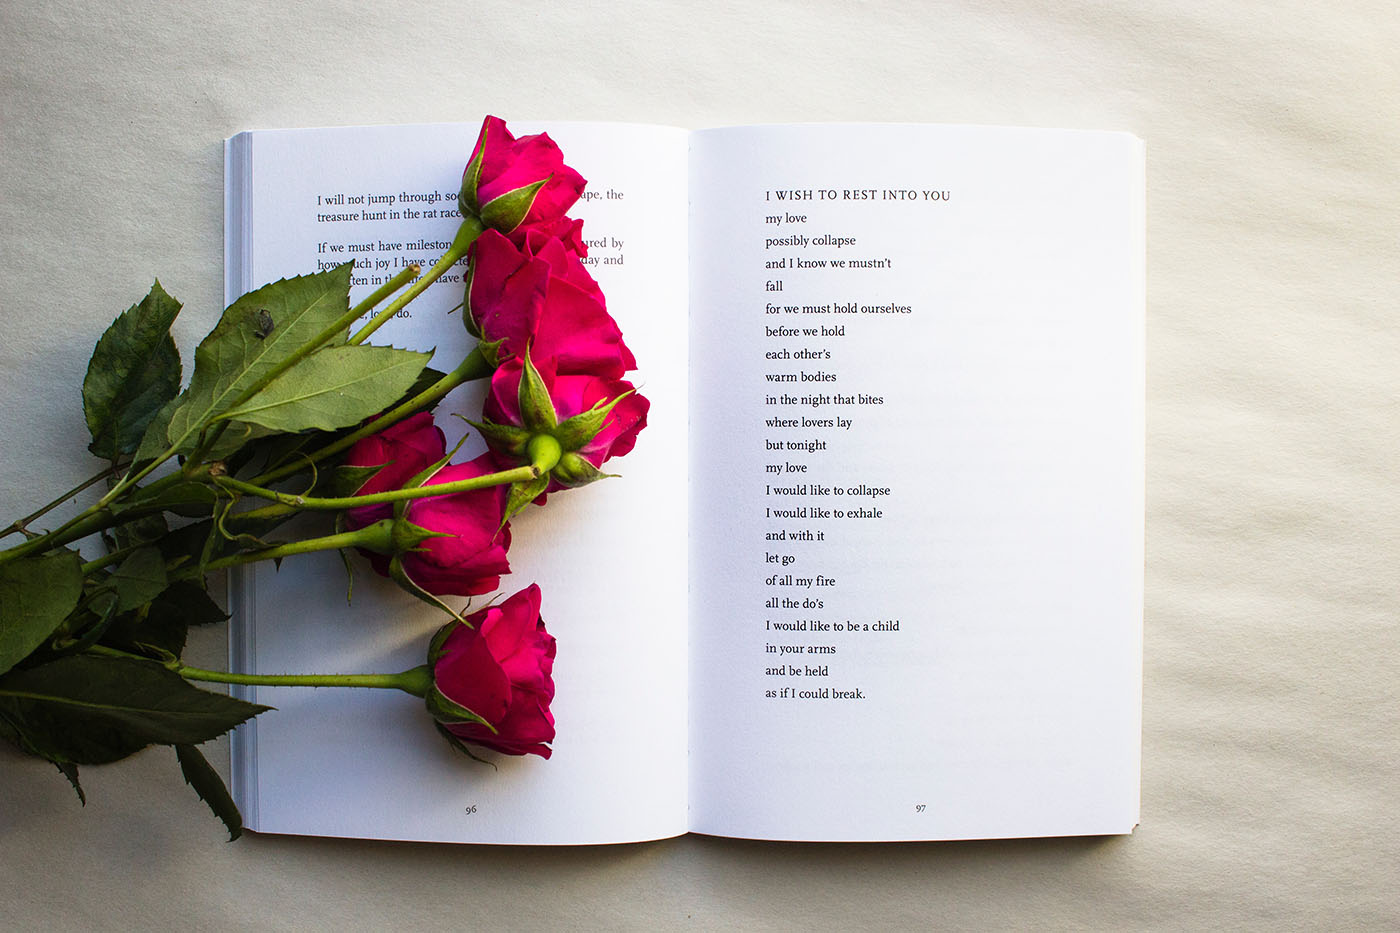 Roses laying on open poetry book